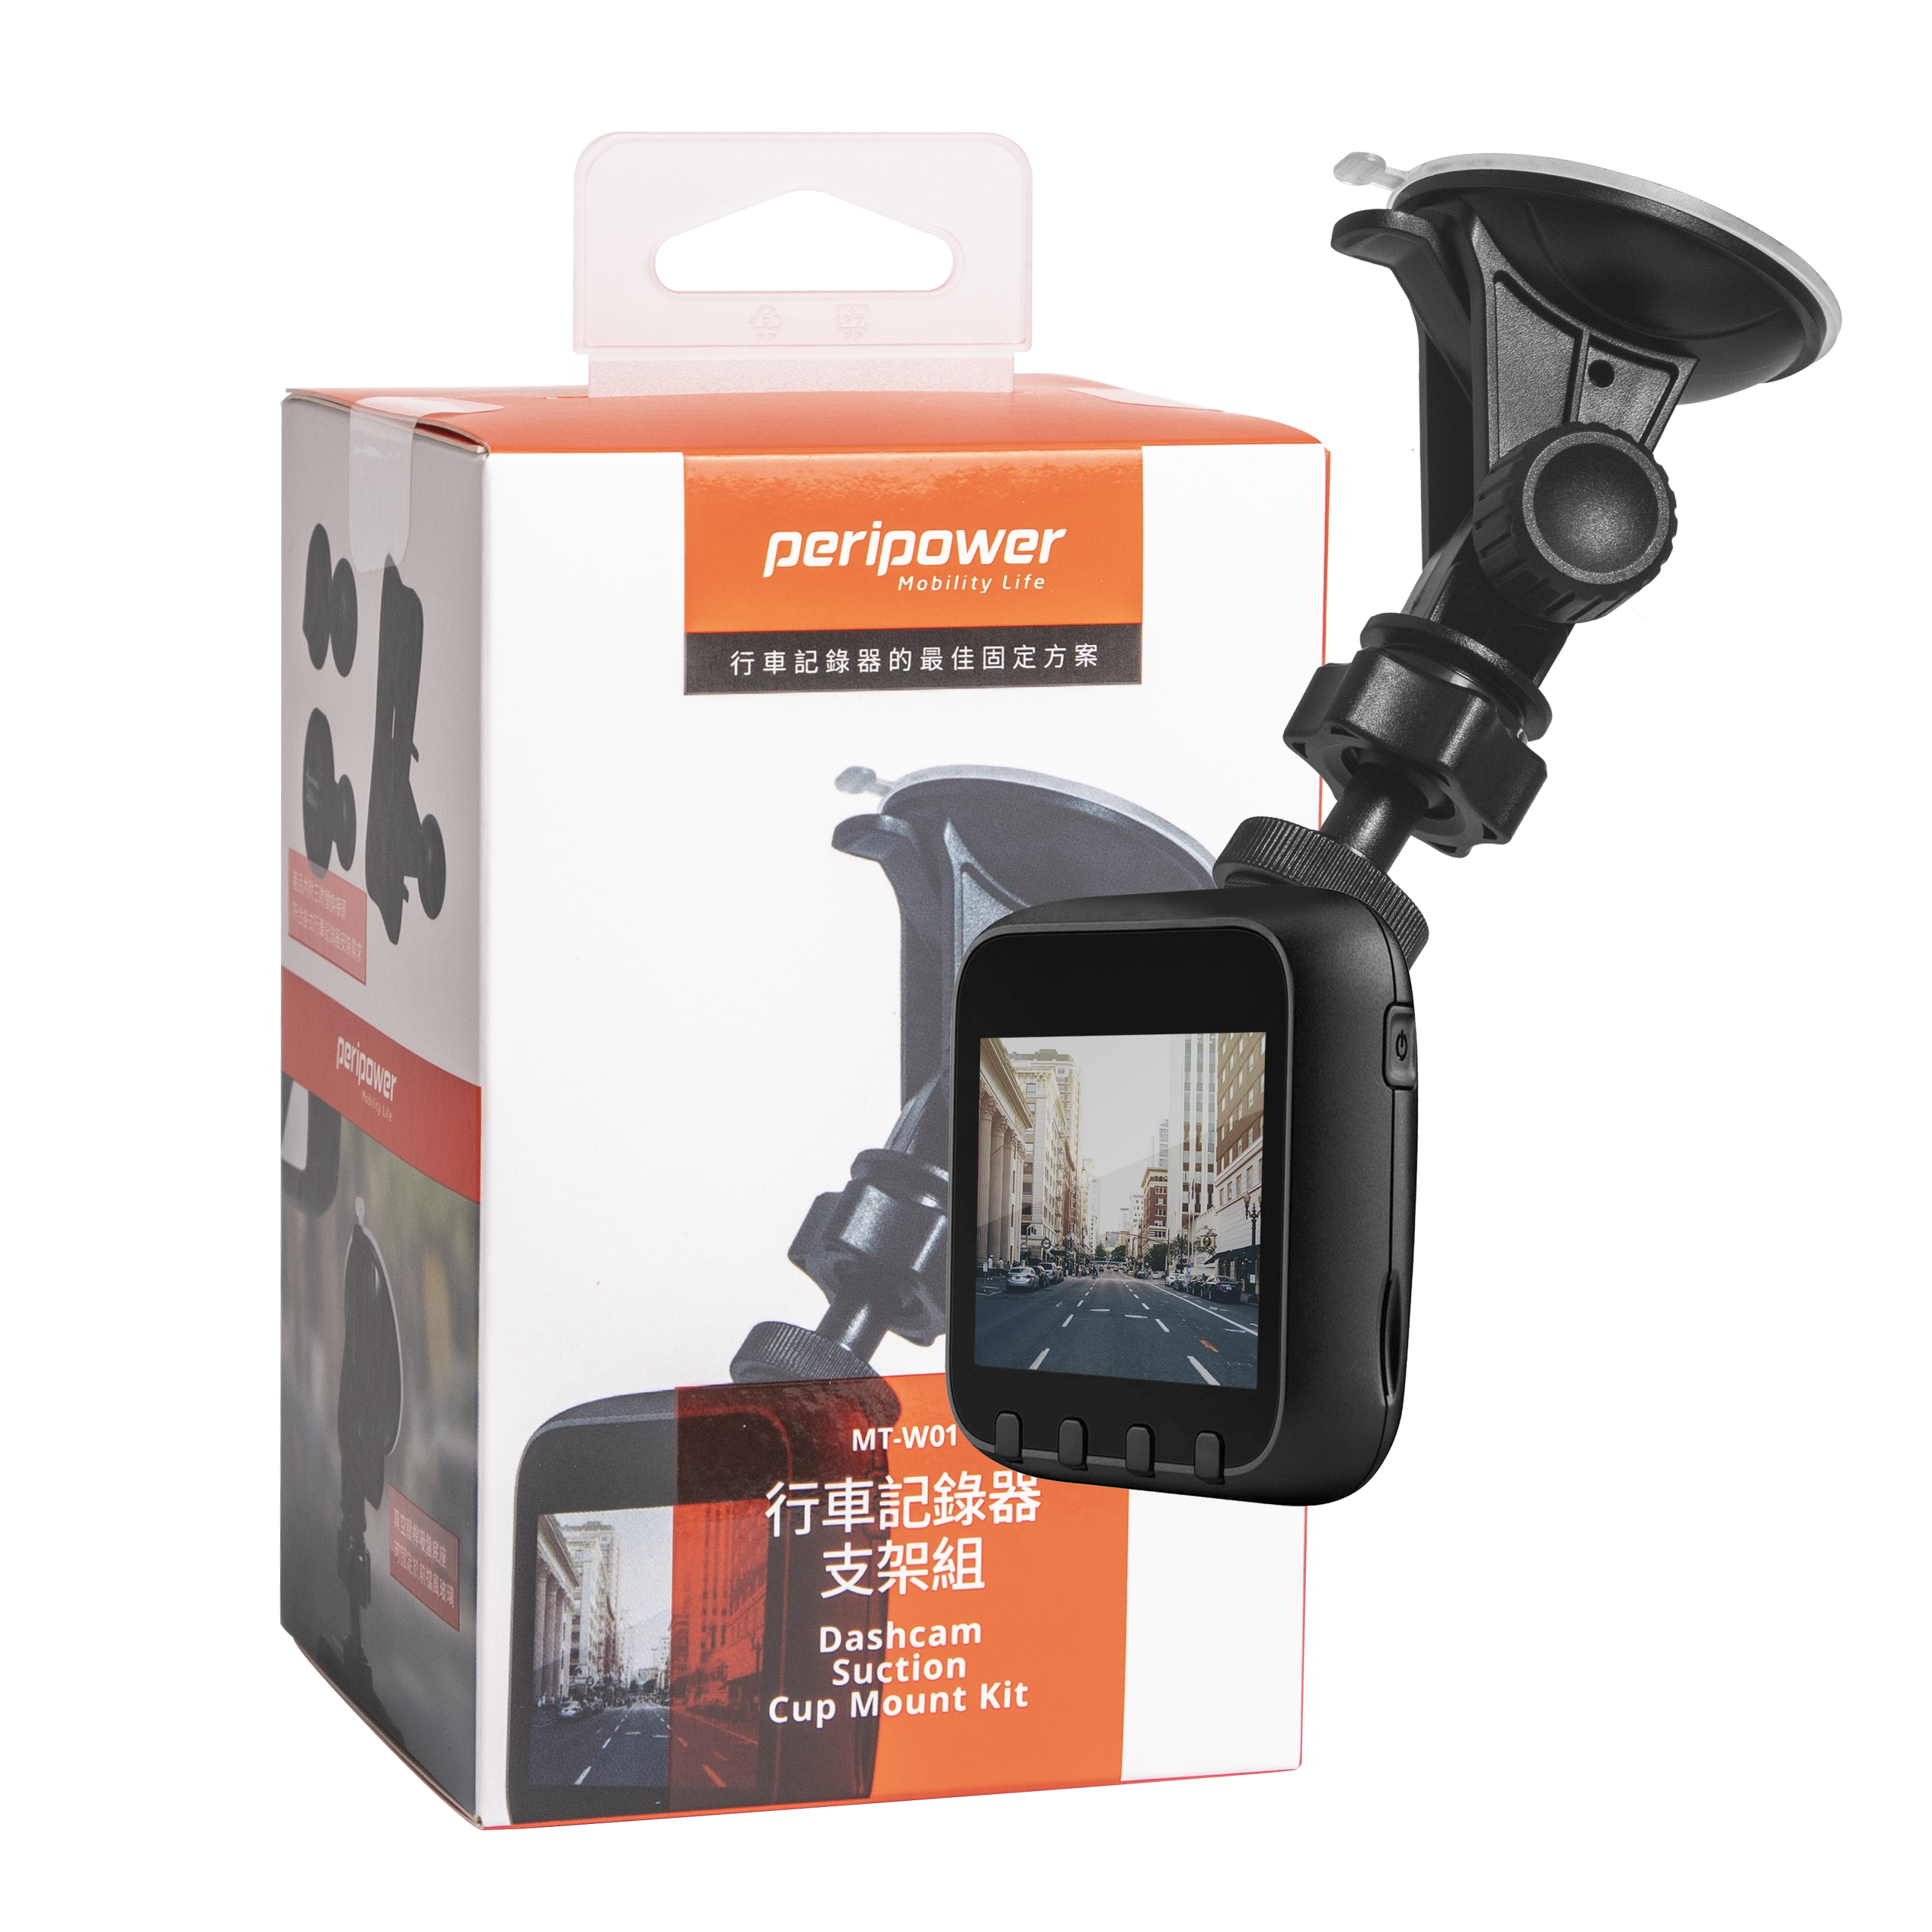 MT-W01 Dashcam Suction Cup Mount Kit